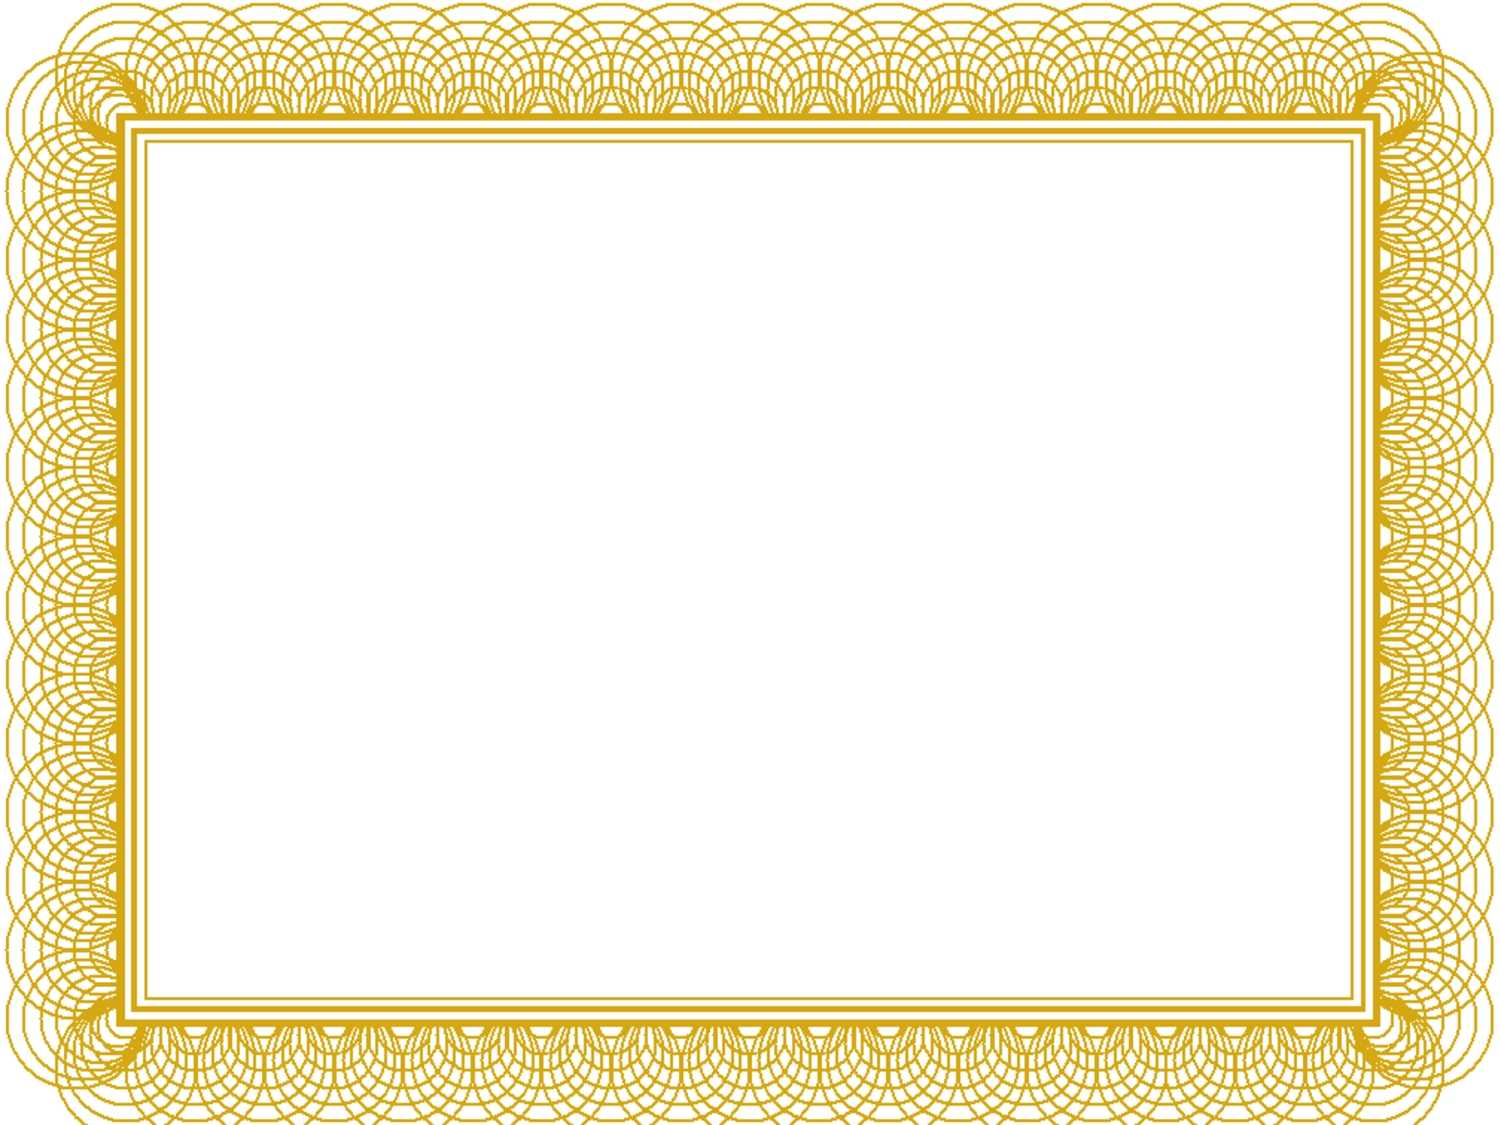 Award Certificate Border Template Pertaining To Gold Within Award Certificate Border Template